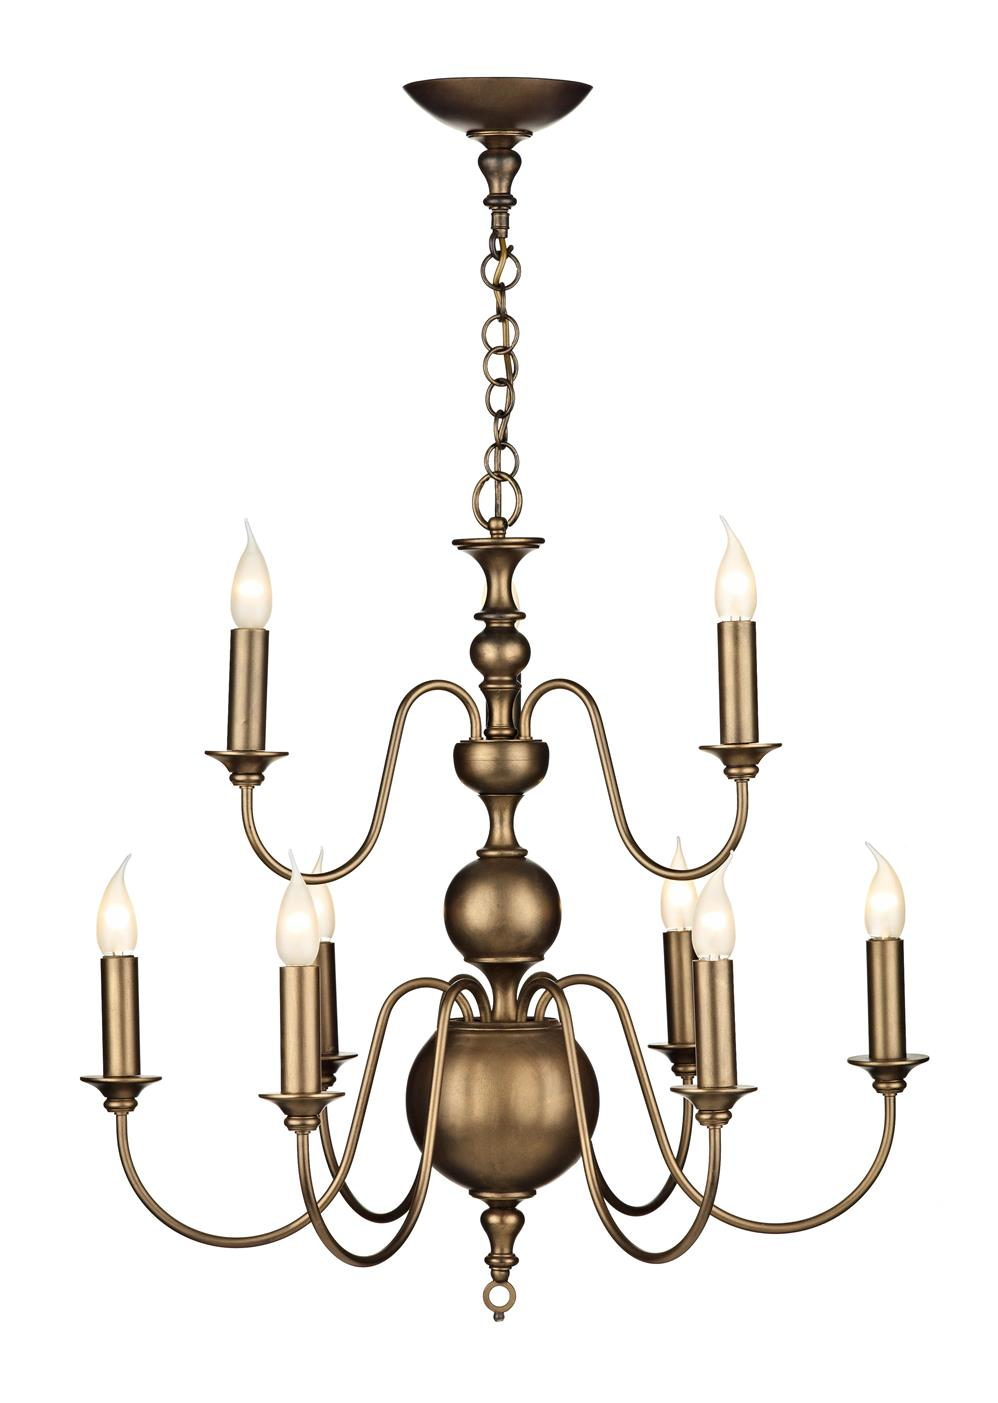 David Hunt Lighting FLE1363 Flemish 9 Light Pendant in Matt Bronze (Fitting Only)